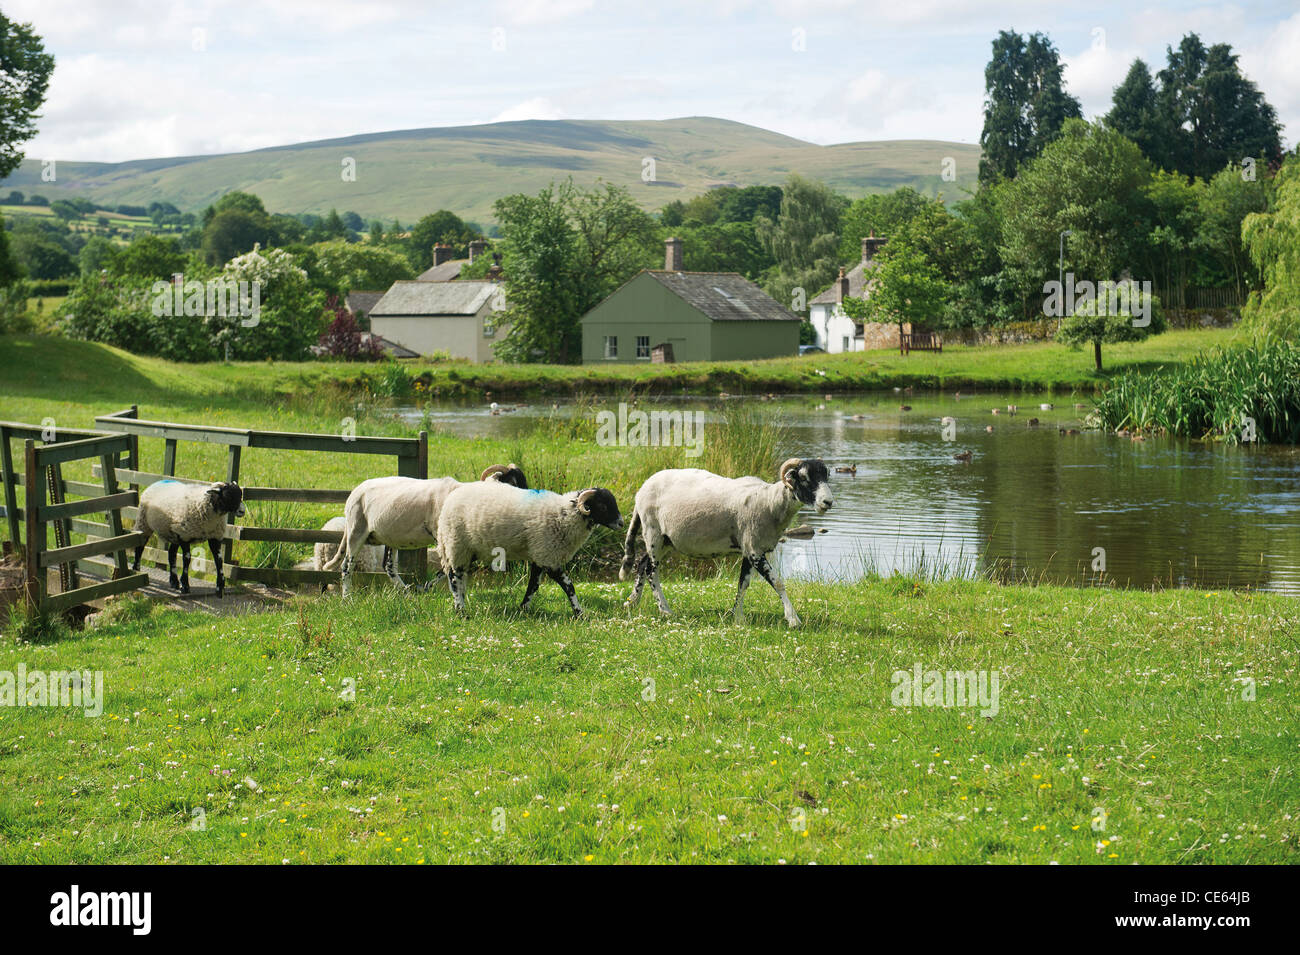 The duck pond and sheep in Caldbeck Cumbrian Village Lake District UK English Countryside - Stock Image